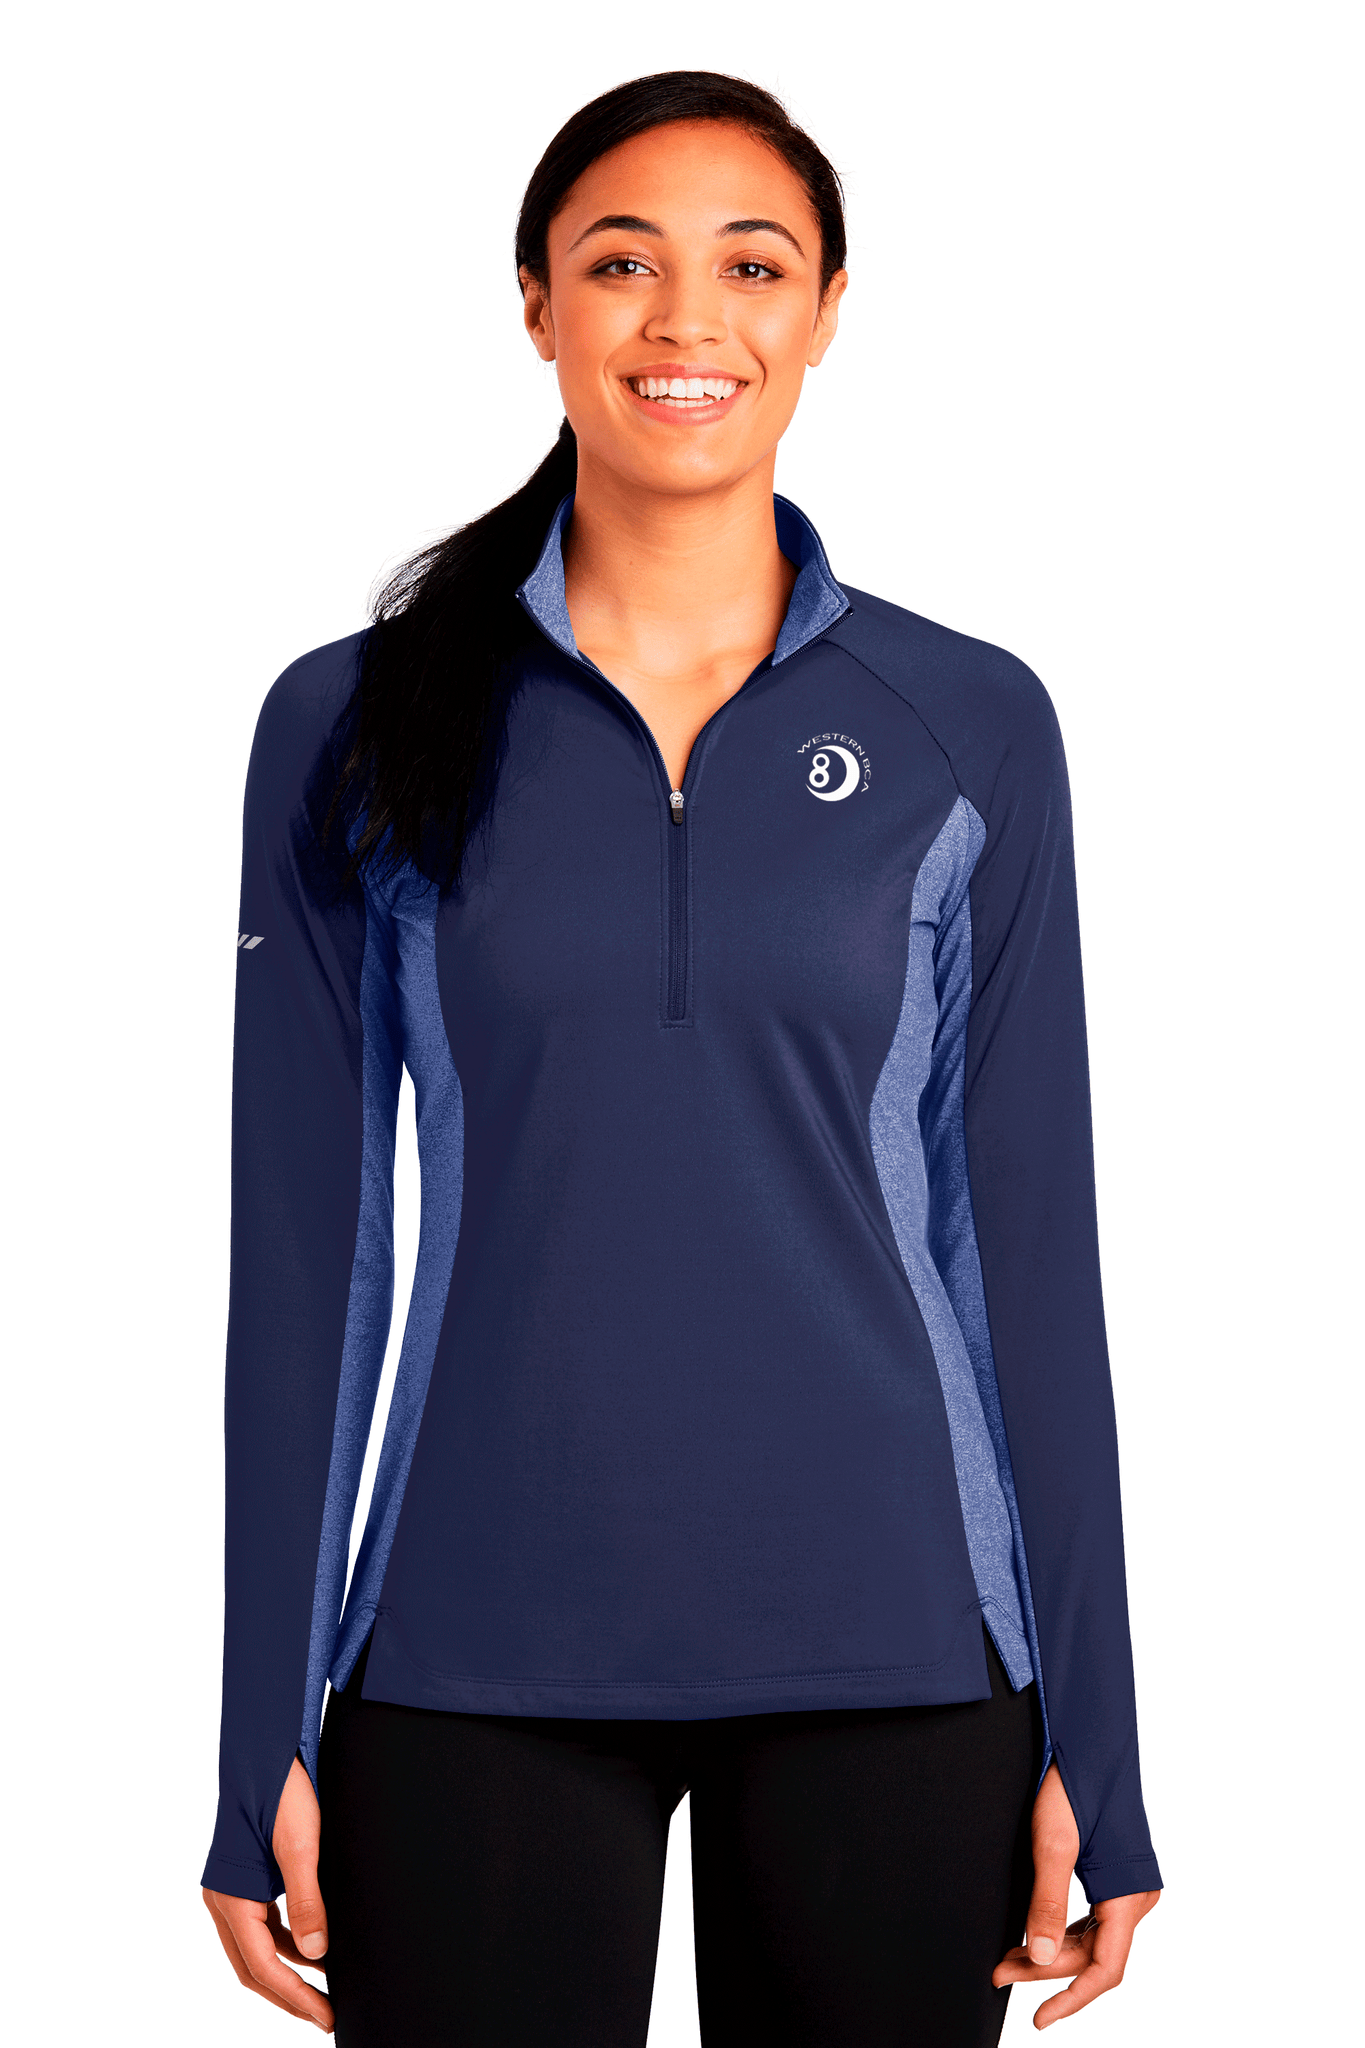 WBCA Stretch 1/2 Zip Pullover